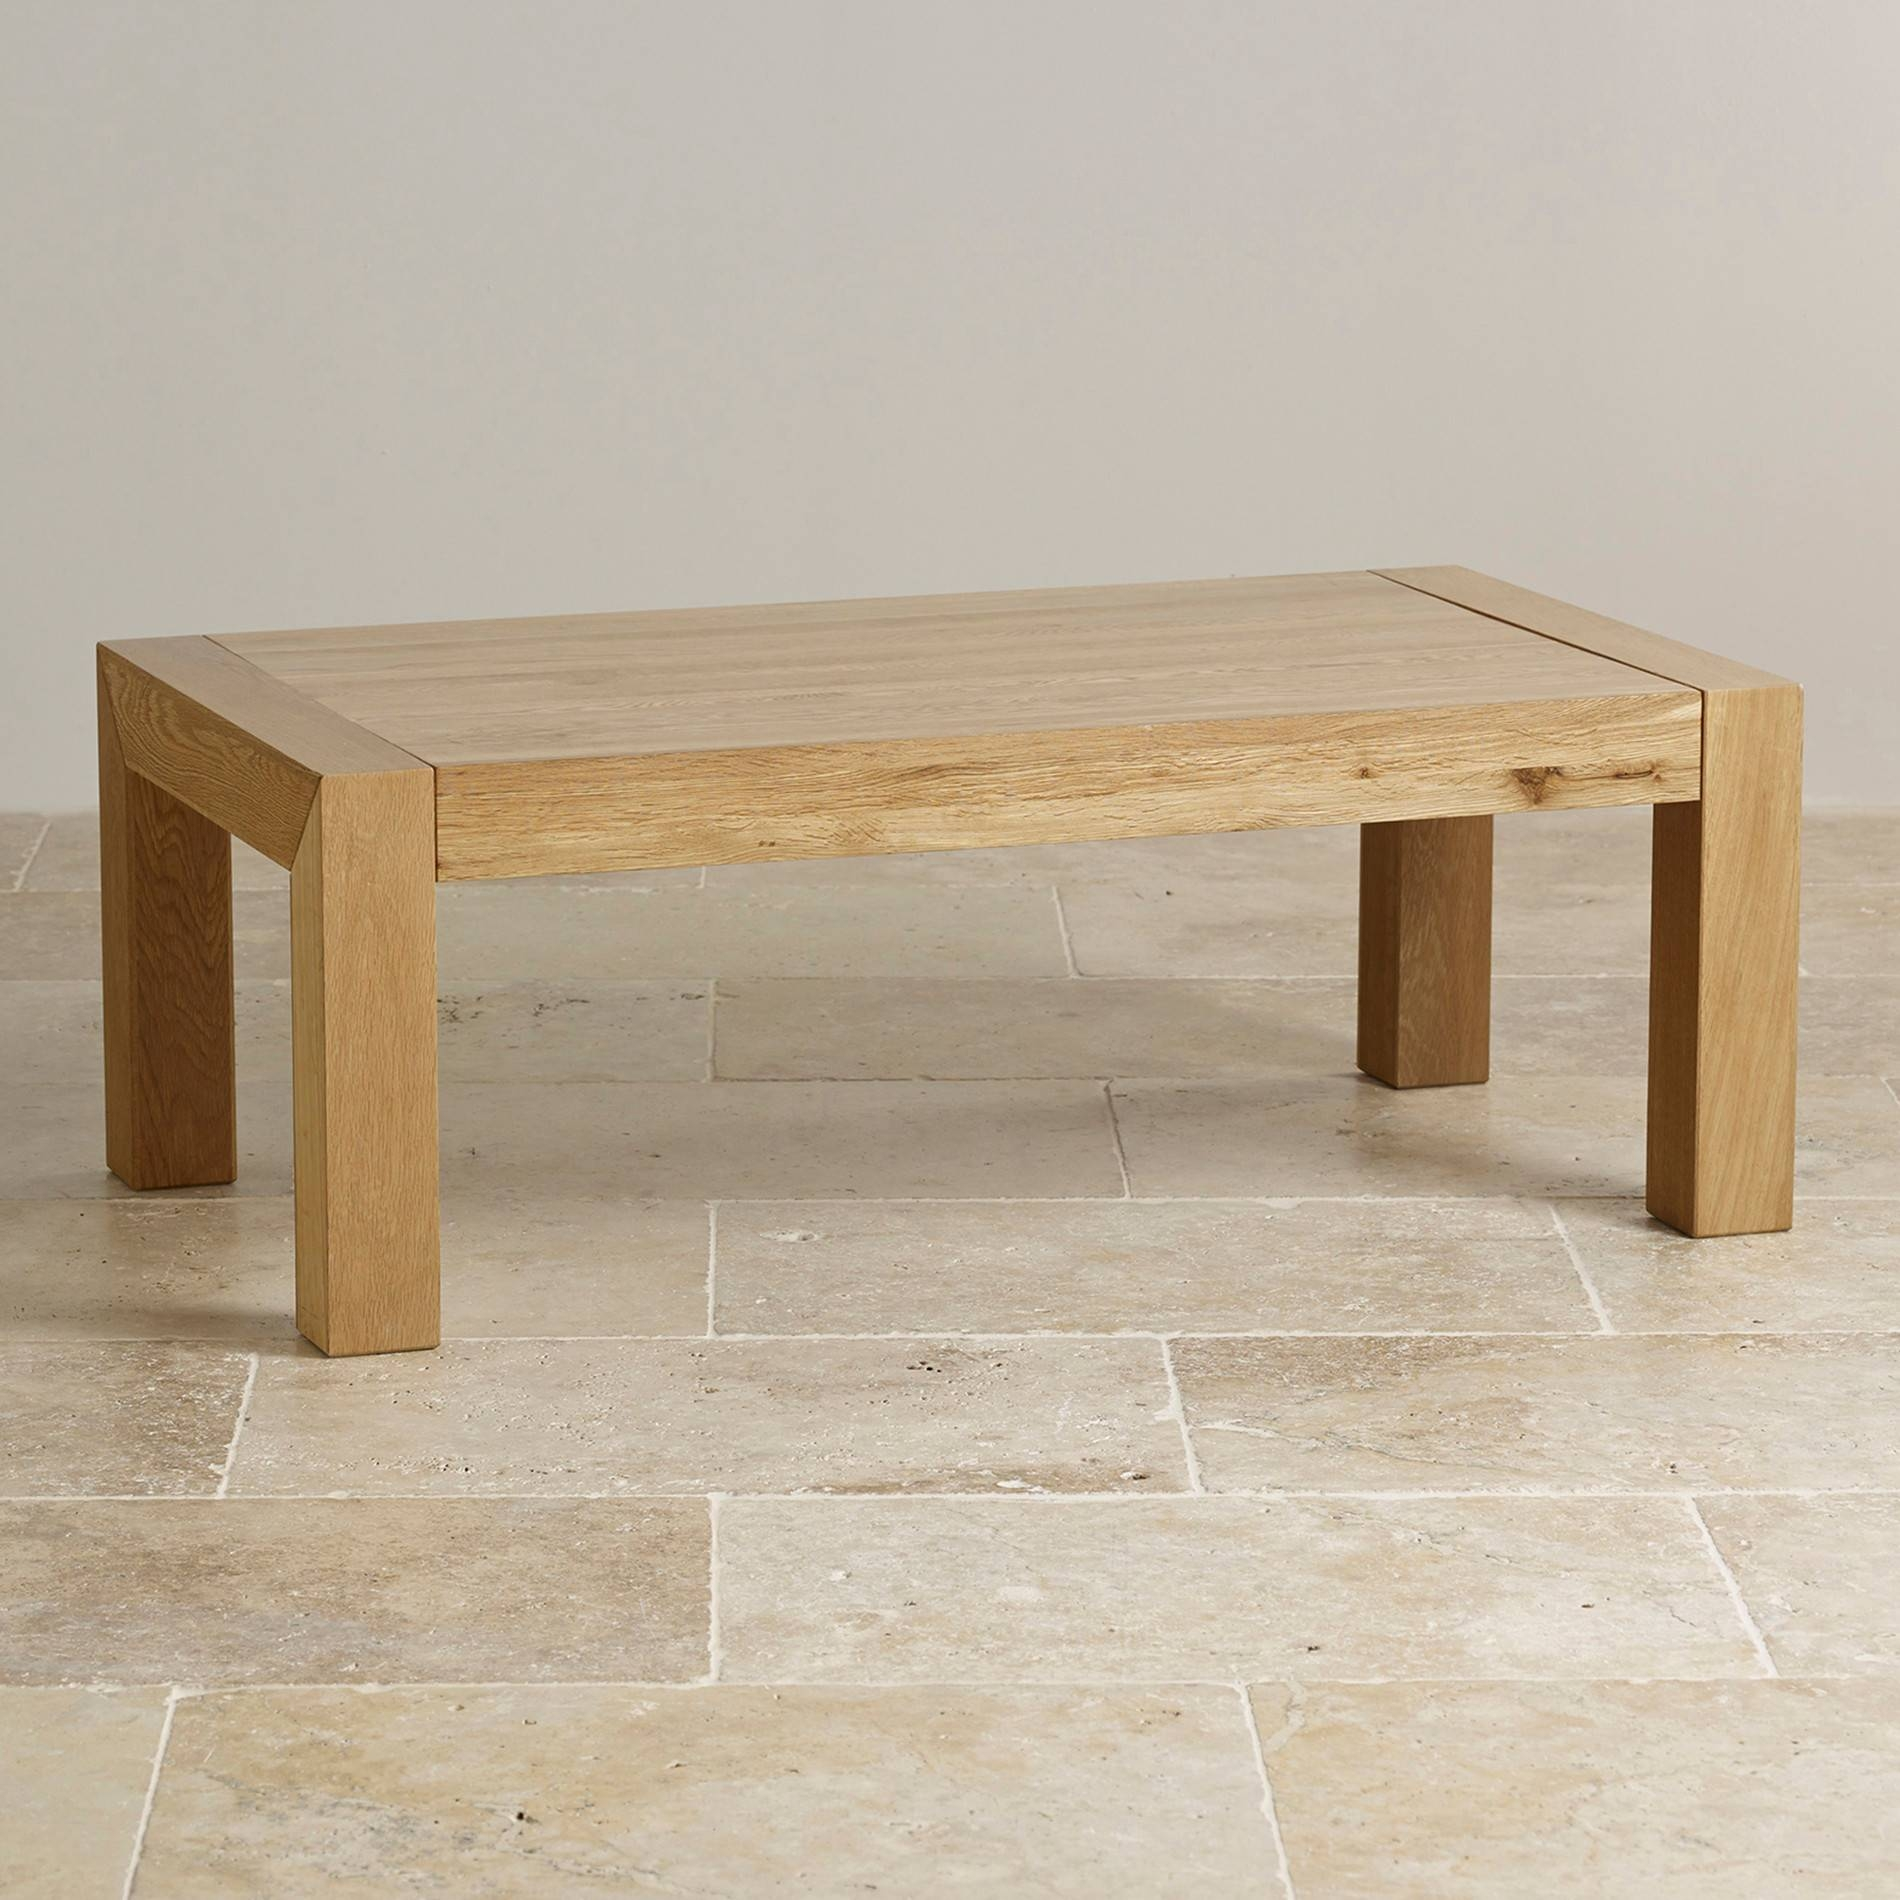 Solid Oak Coffee Tables And End Tables | Coffee Tables Decoration with Oak Coffee Tables With Shelf (Image 30 of 30)